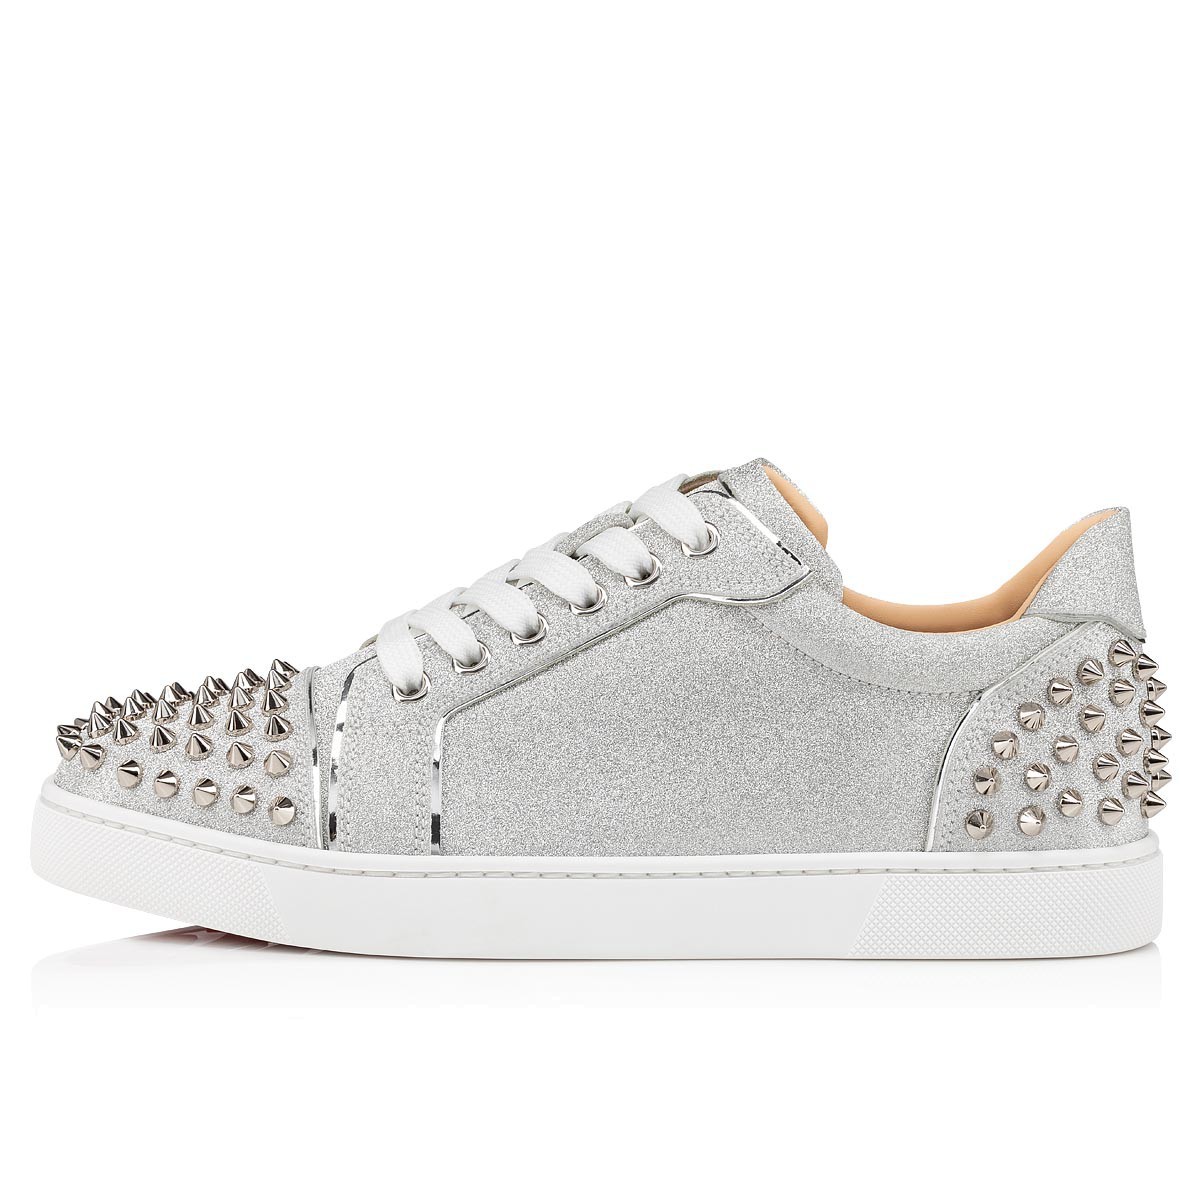 Shoes - Vieira 2 - Christian Louboutin